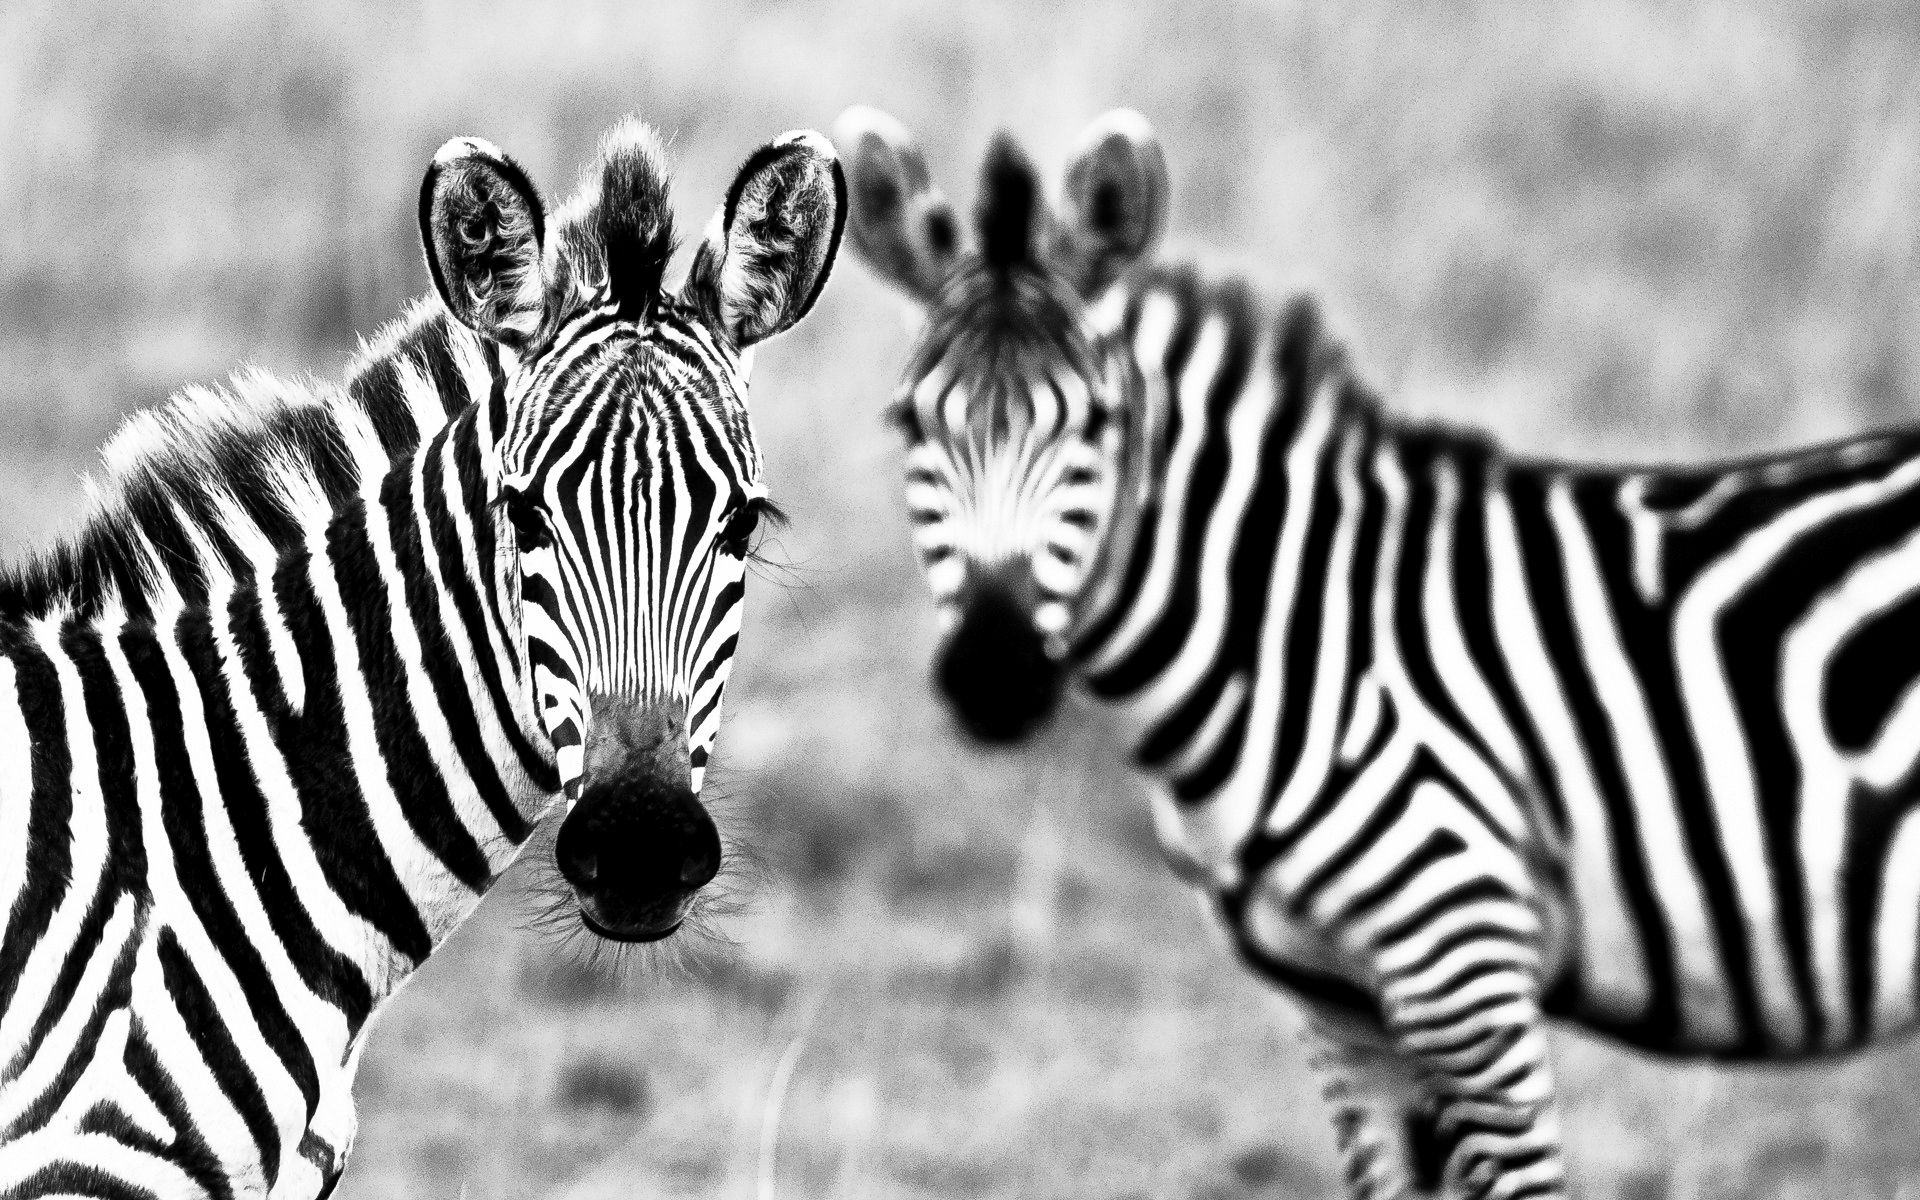 watching ( #zebras #ebonyandivory #animals ) | h u m Λ n